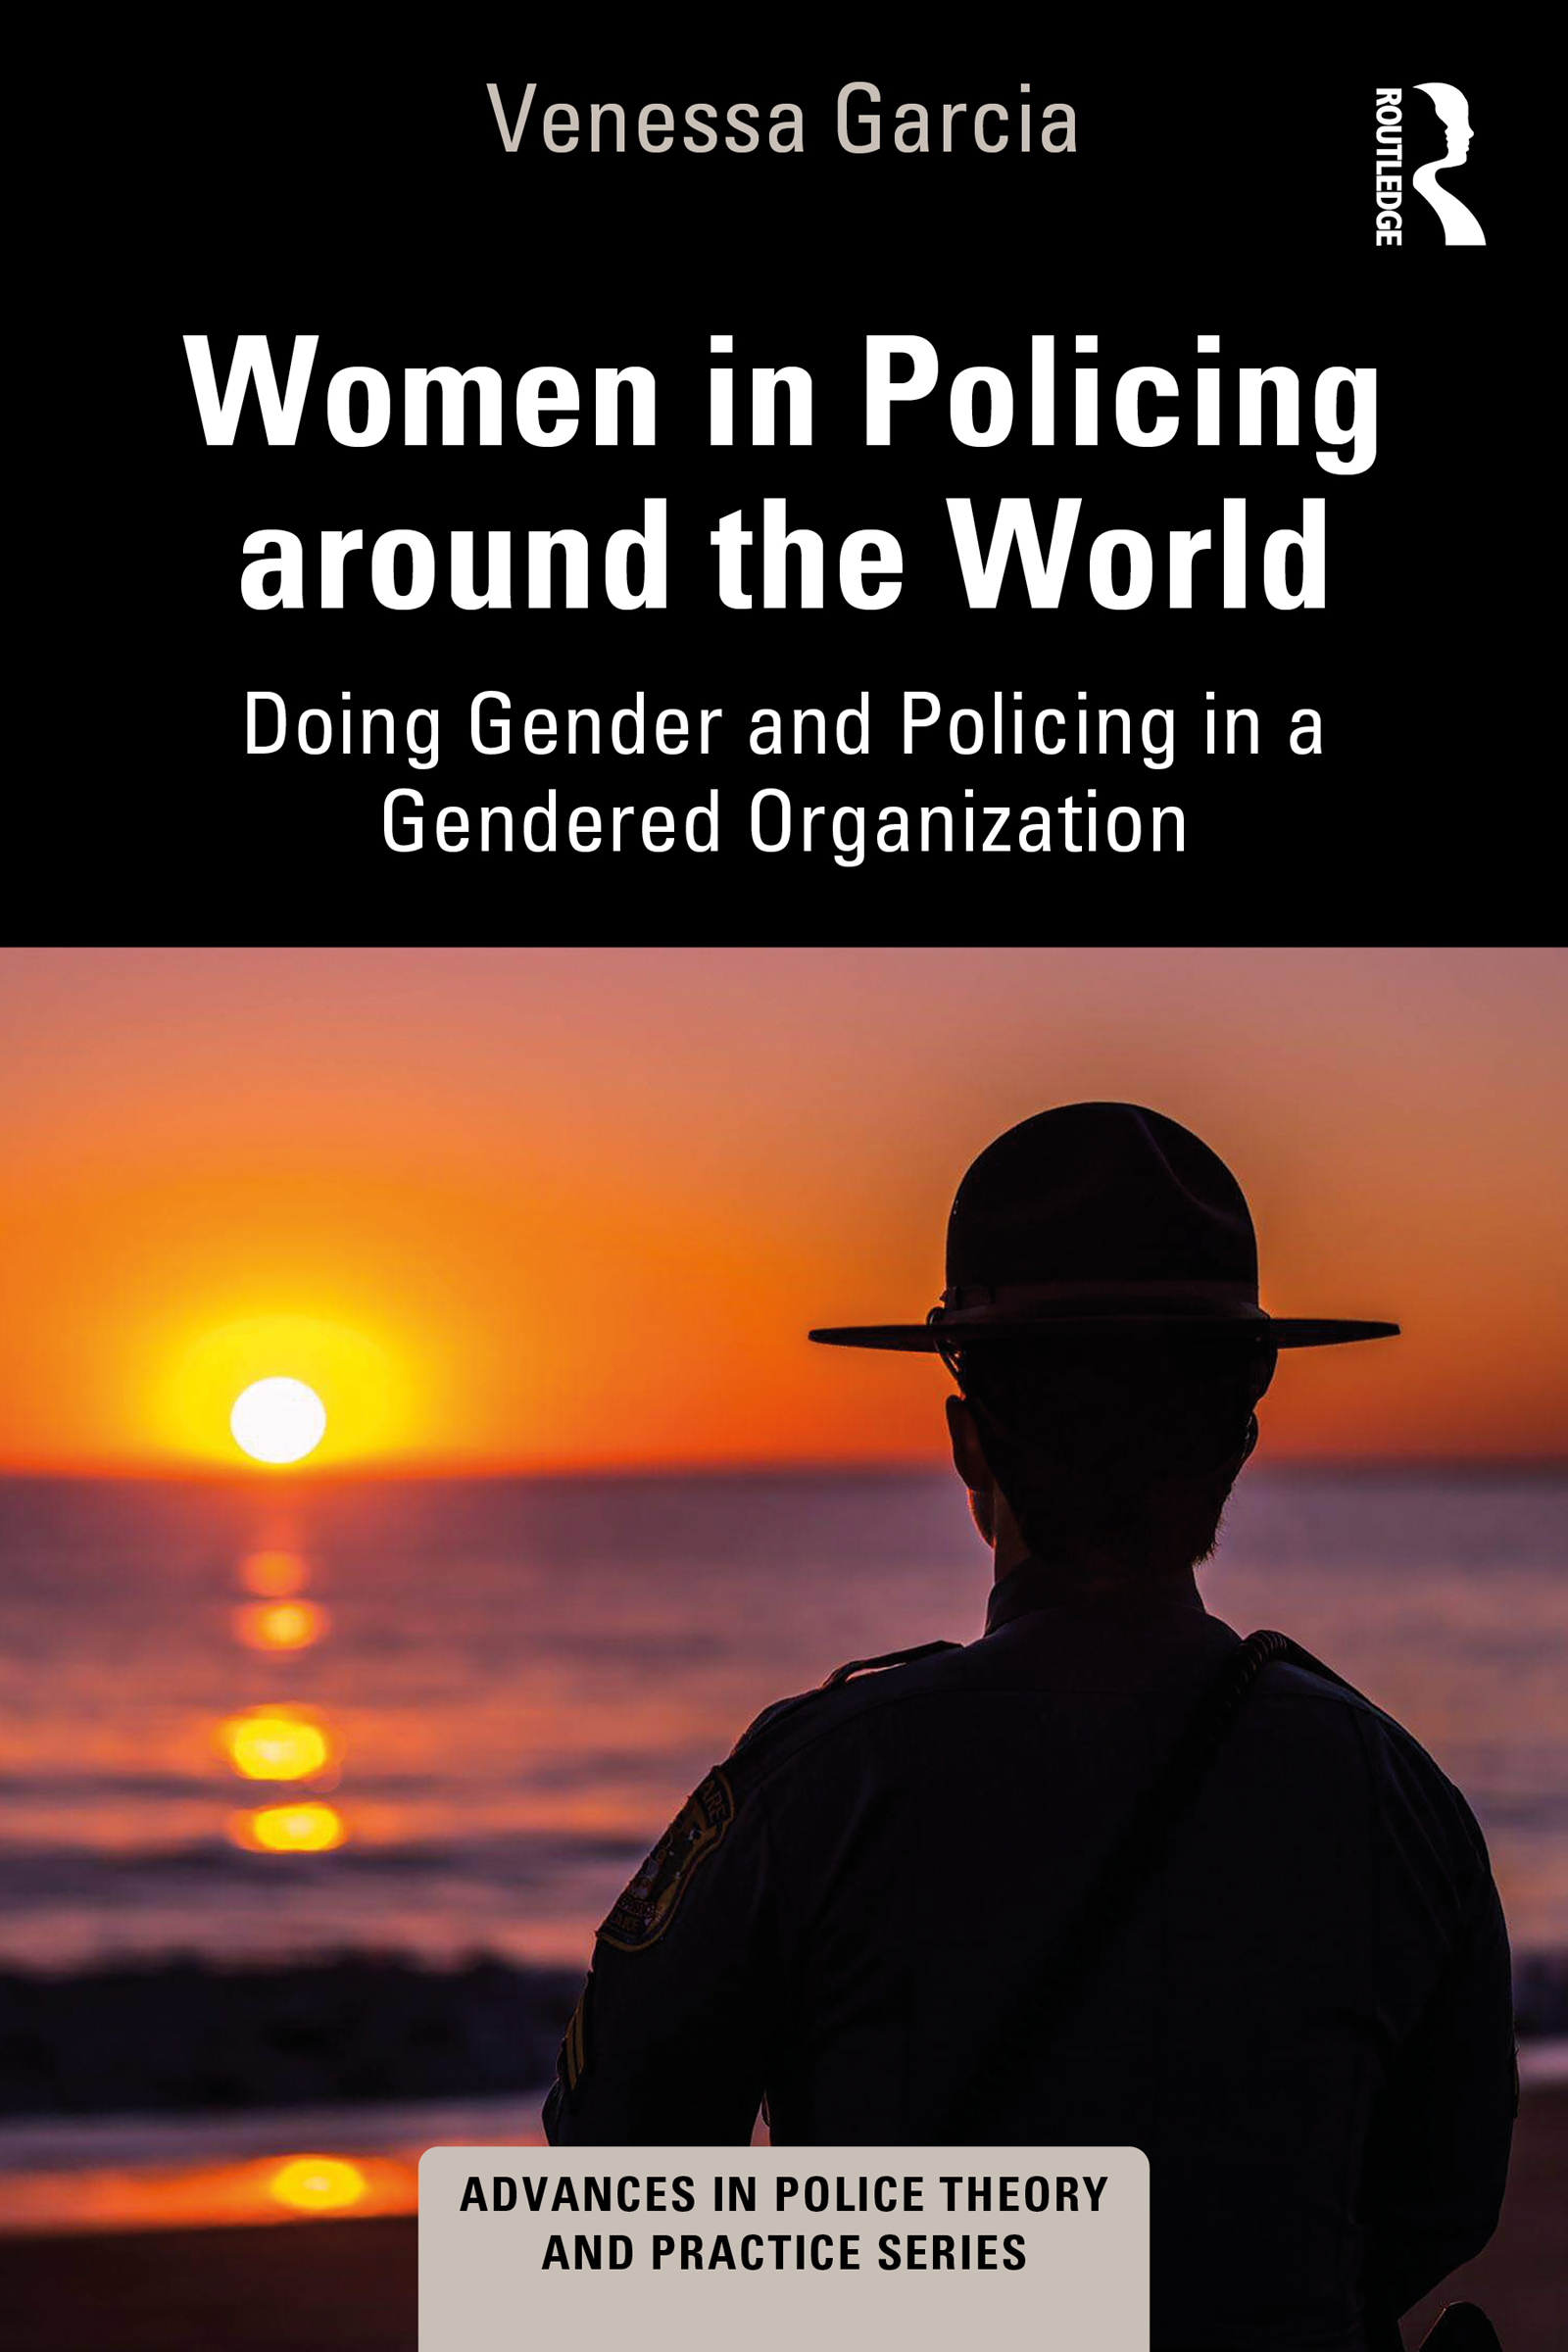 Recruitment, Training, and Promotion of Women in the Gendered Police Organization